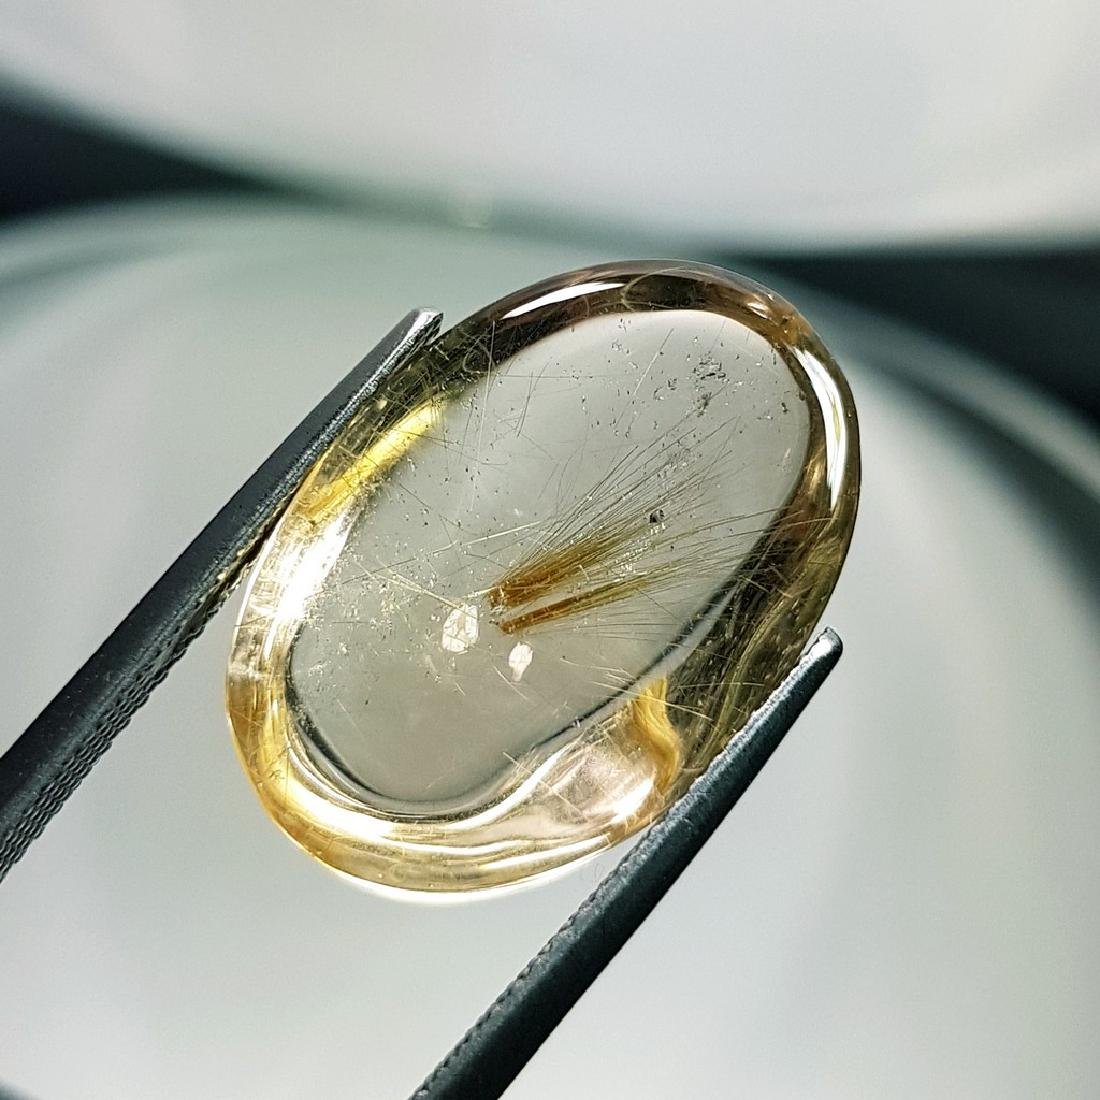 Golden Rutile Quartz - 16.16 ct - 4